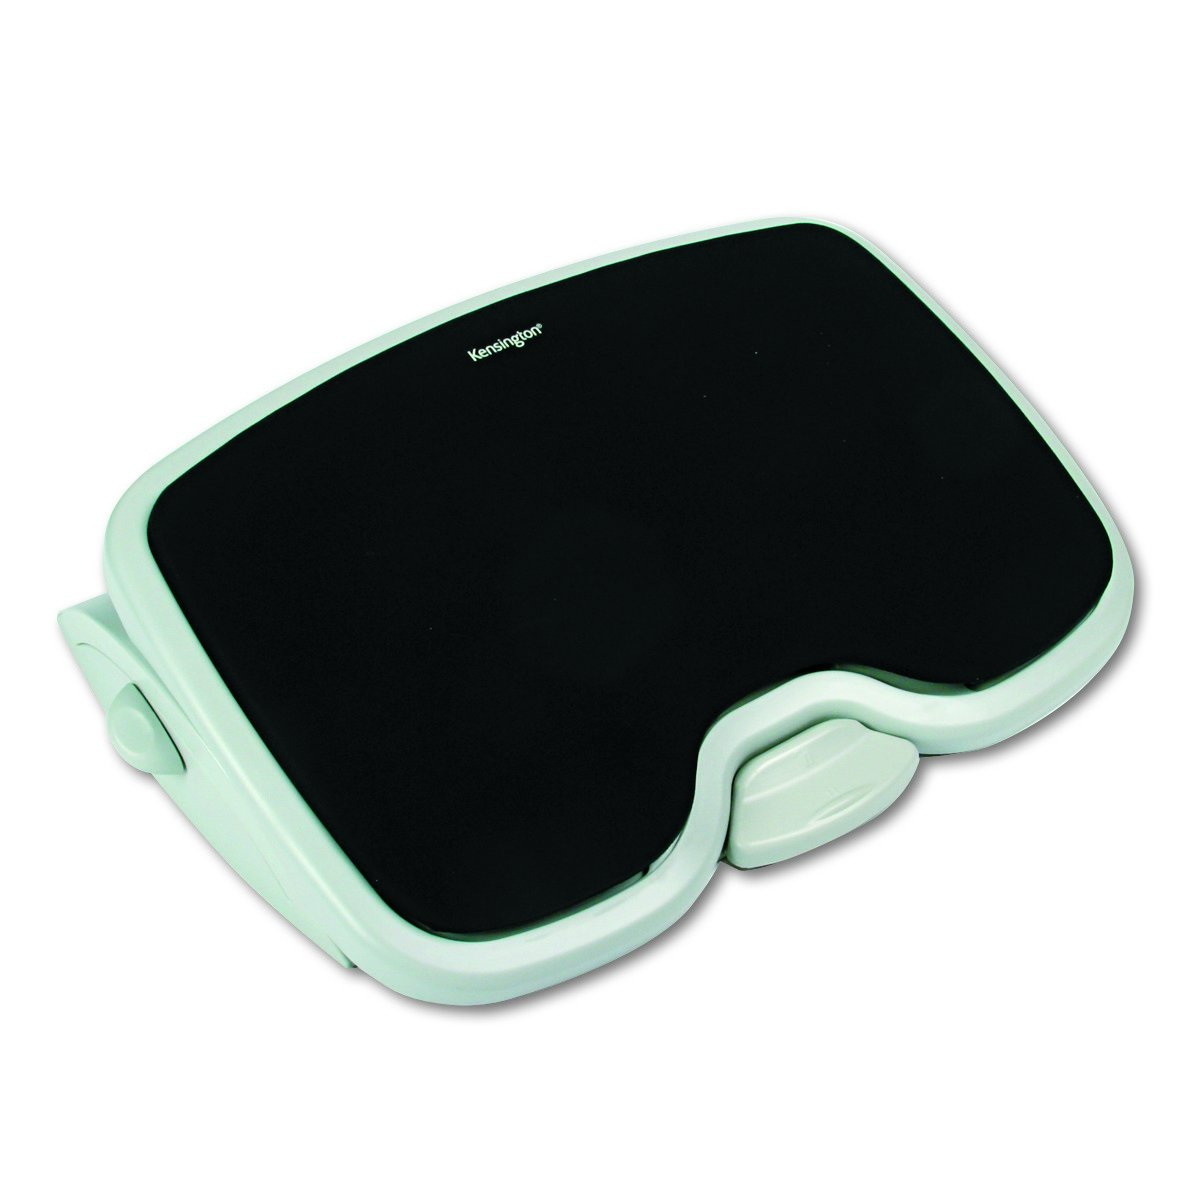 Kensington 56144 Solemate Plus Adjustable Footrest With Foam Pad